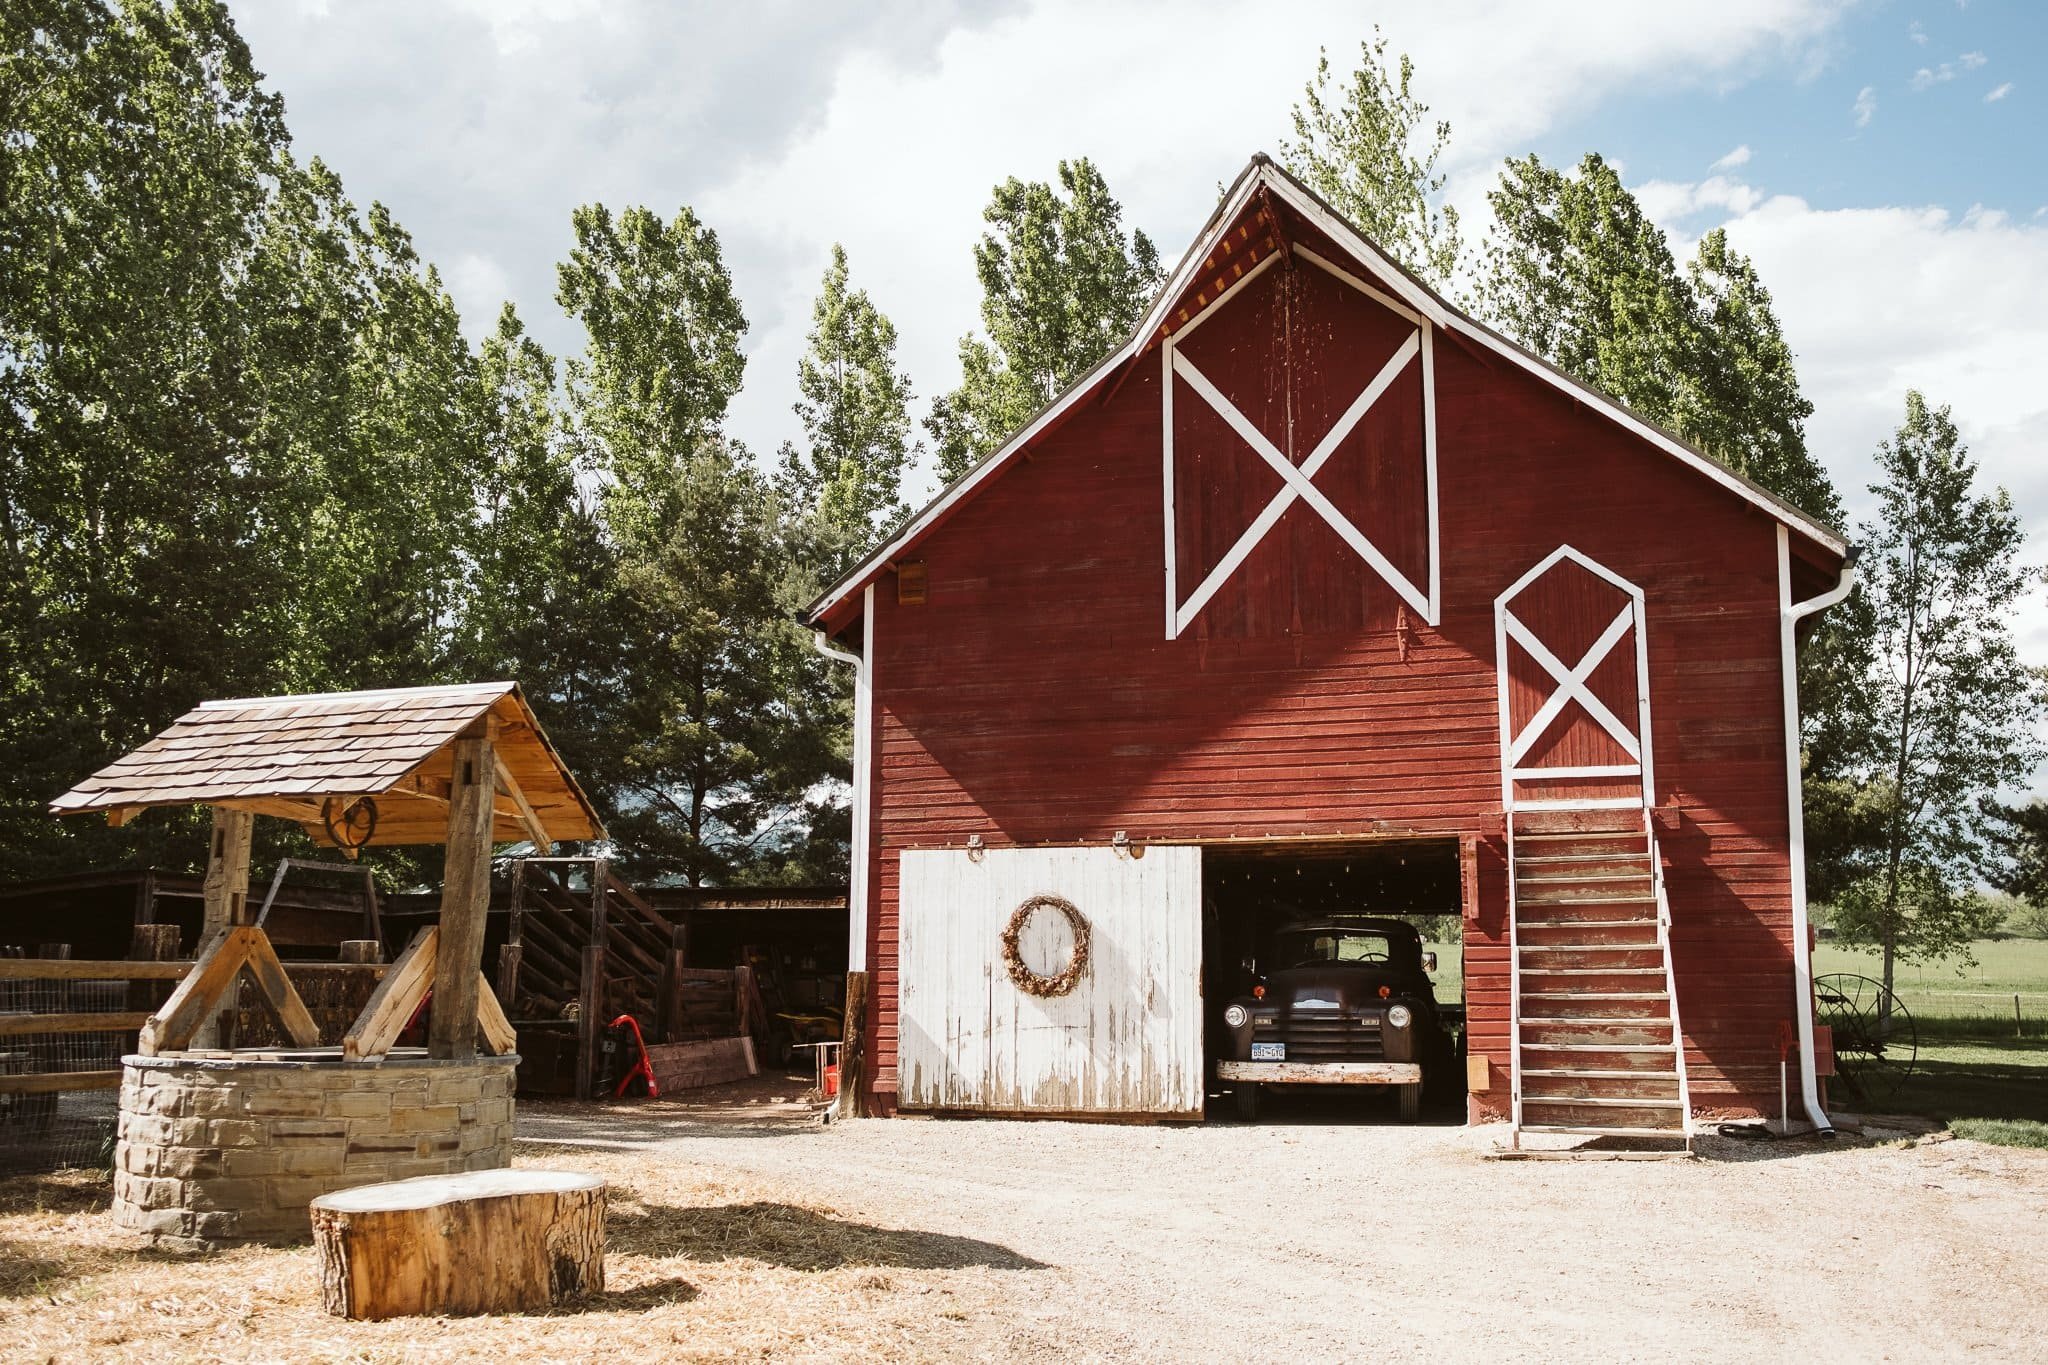 milston-well-farm-wedding-venue-boulder-15